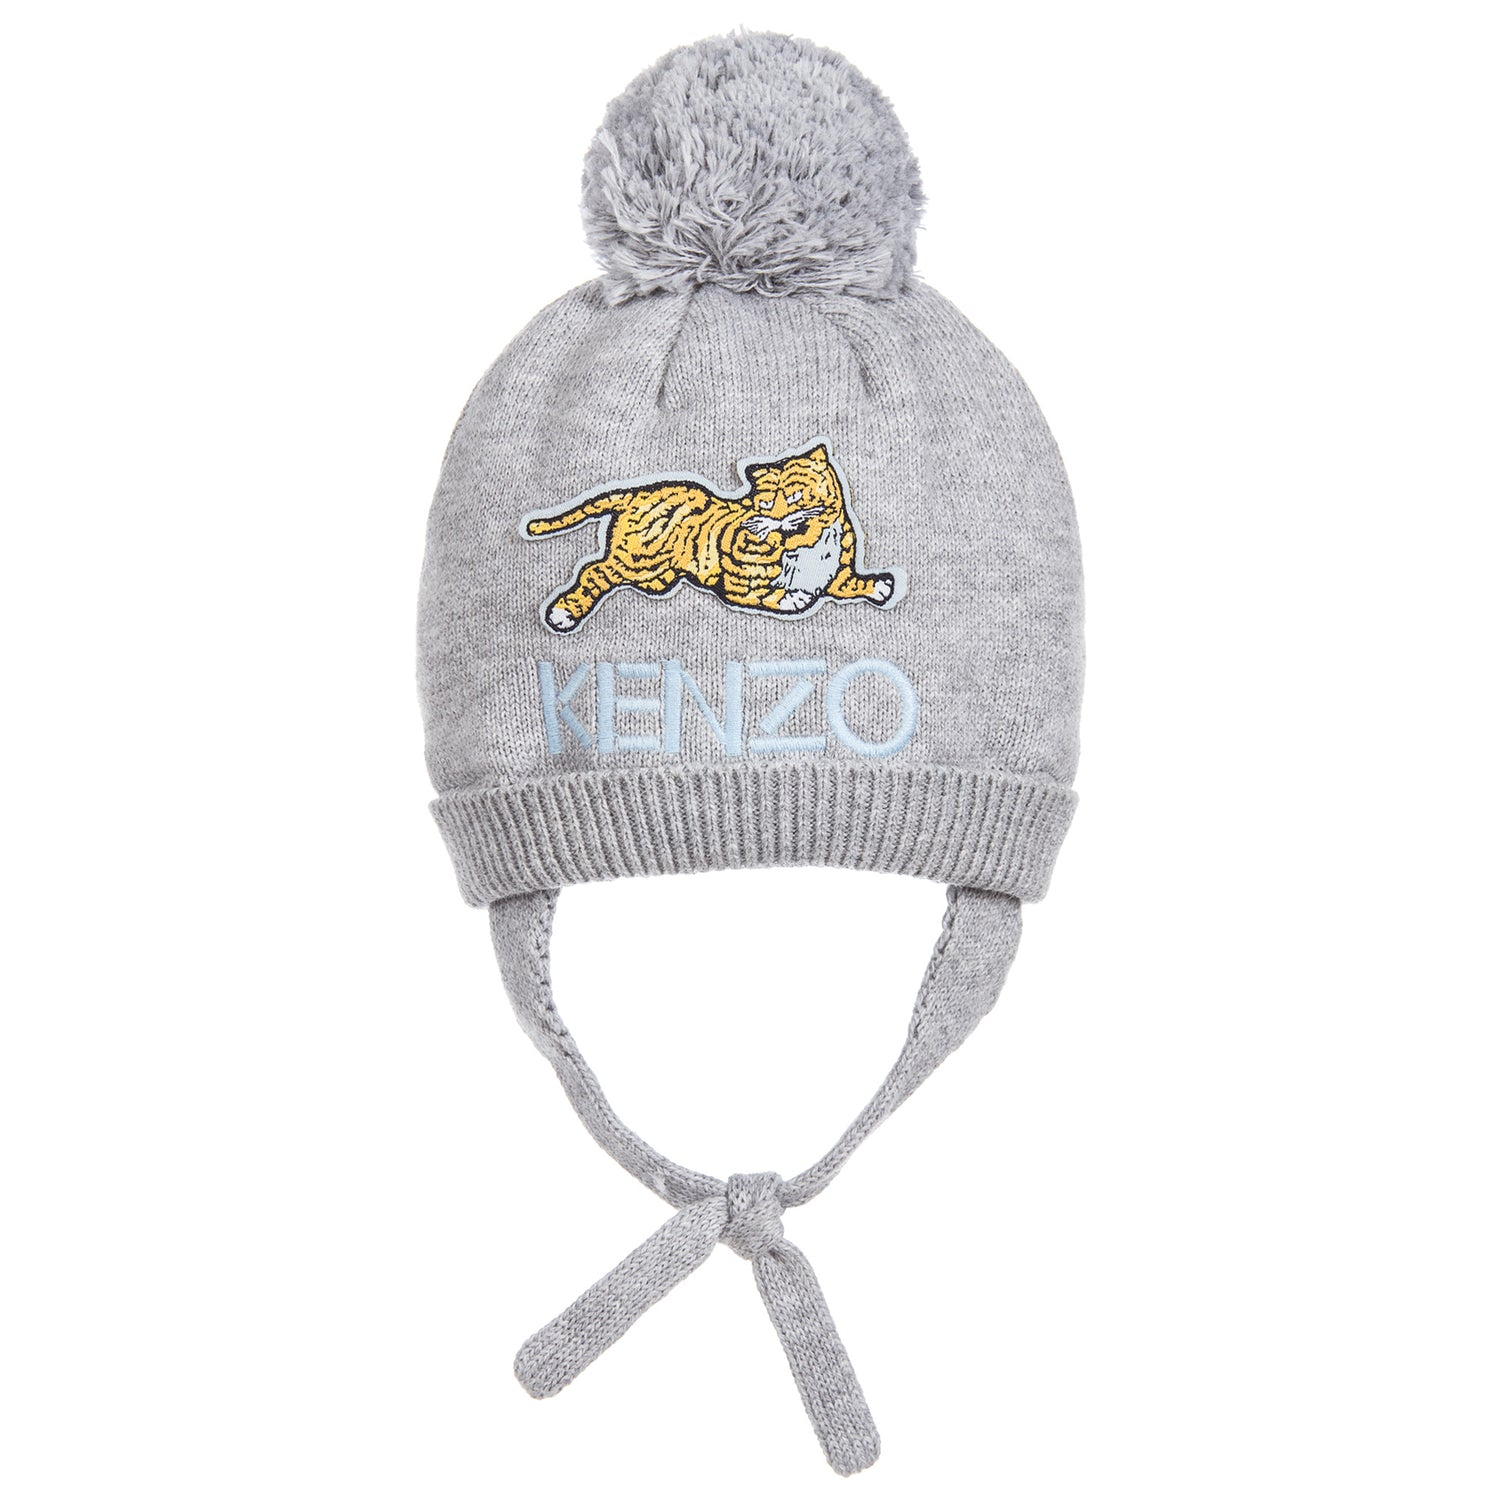 99e86d0a6f7 Kenzo Baby Grey Knitted Cashmere Blend Hat – Petit New York